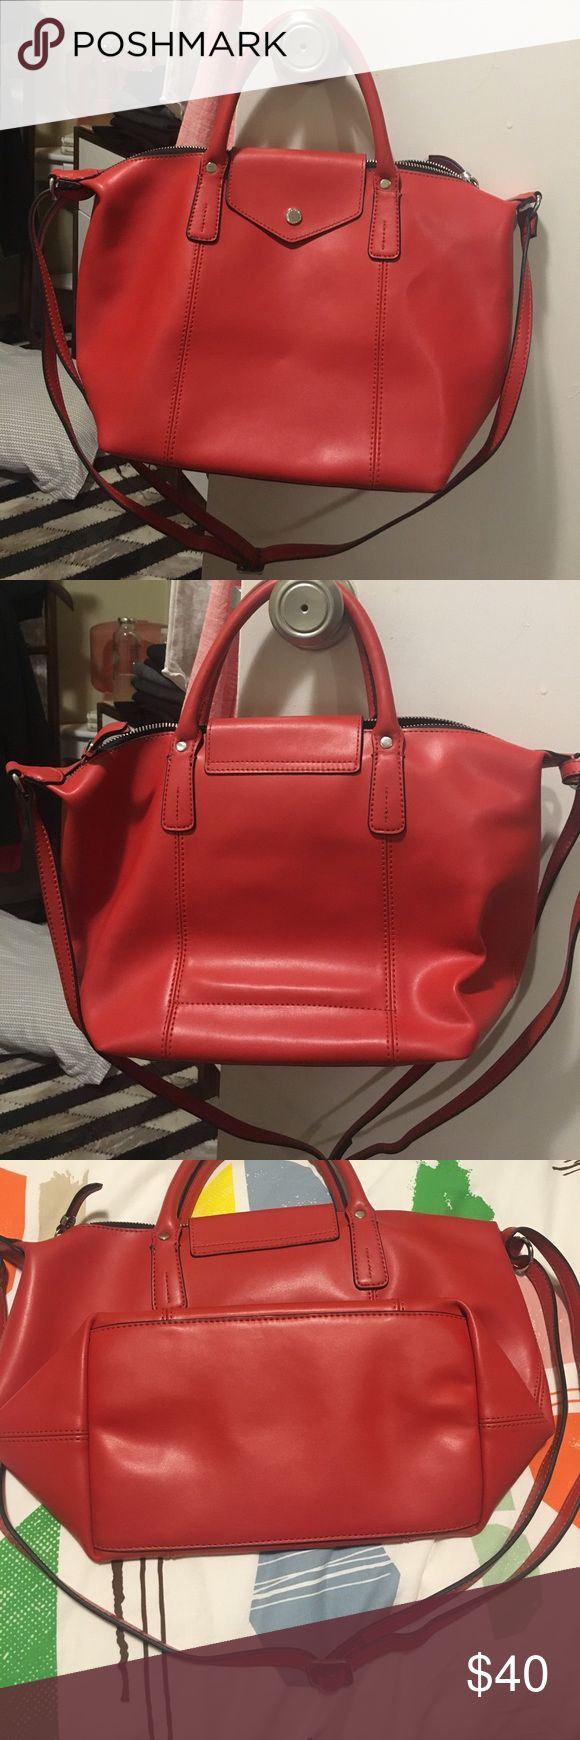 """Emma & Sophia red leather convertible tote Great condition aside from the two corners as shown in the photos. Straps were reinforced at local leather shop with studs so it can handle more weight. 12"""" MacBook for size reference. SIZE 10""""x 5 1/2""""w 9 1/2""""h emma & sophia Bags Crossbody Bags"""